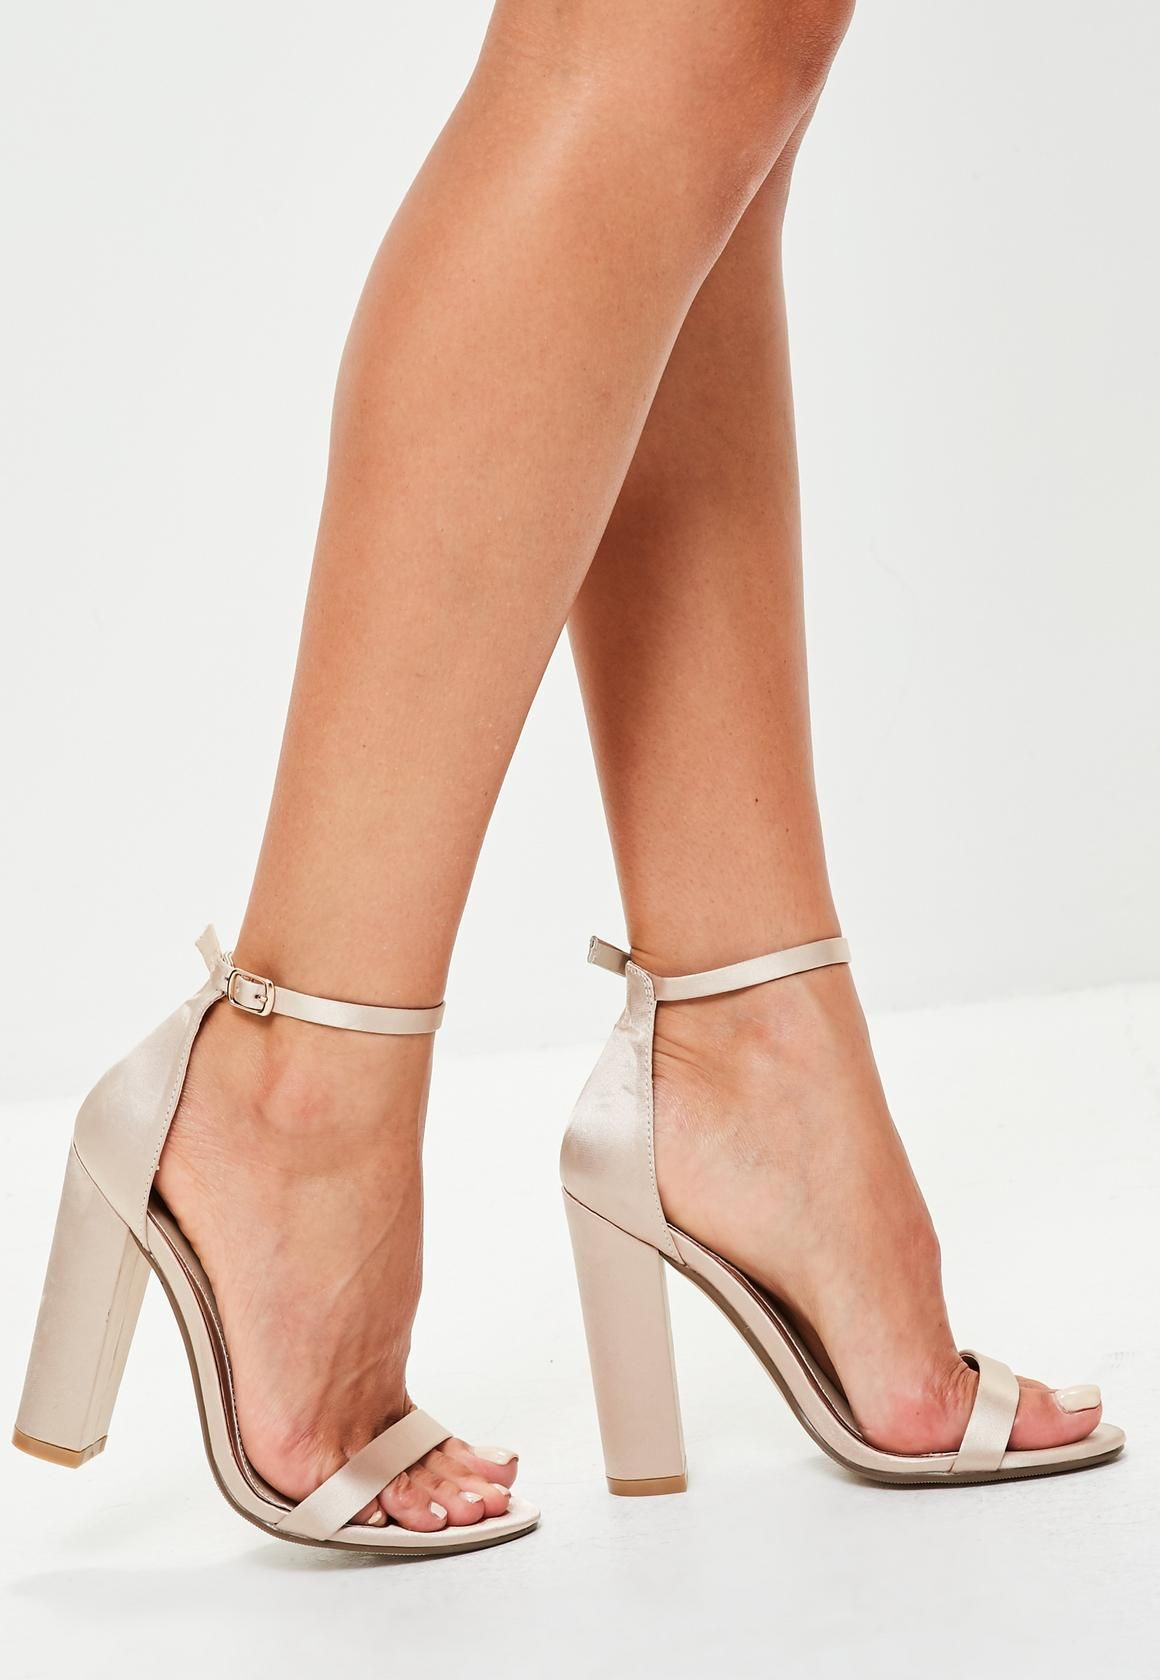 539e9eede2e Missguided - Nude Satin Block Heel Barely There Sandals